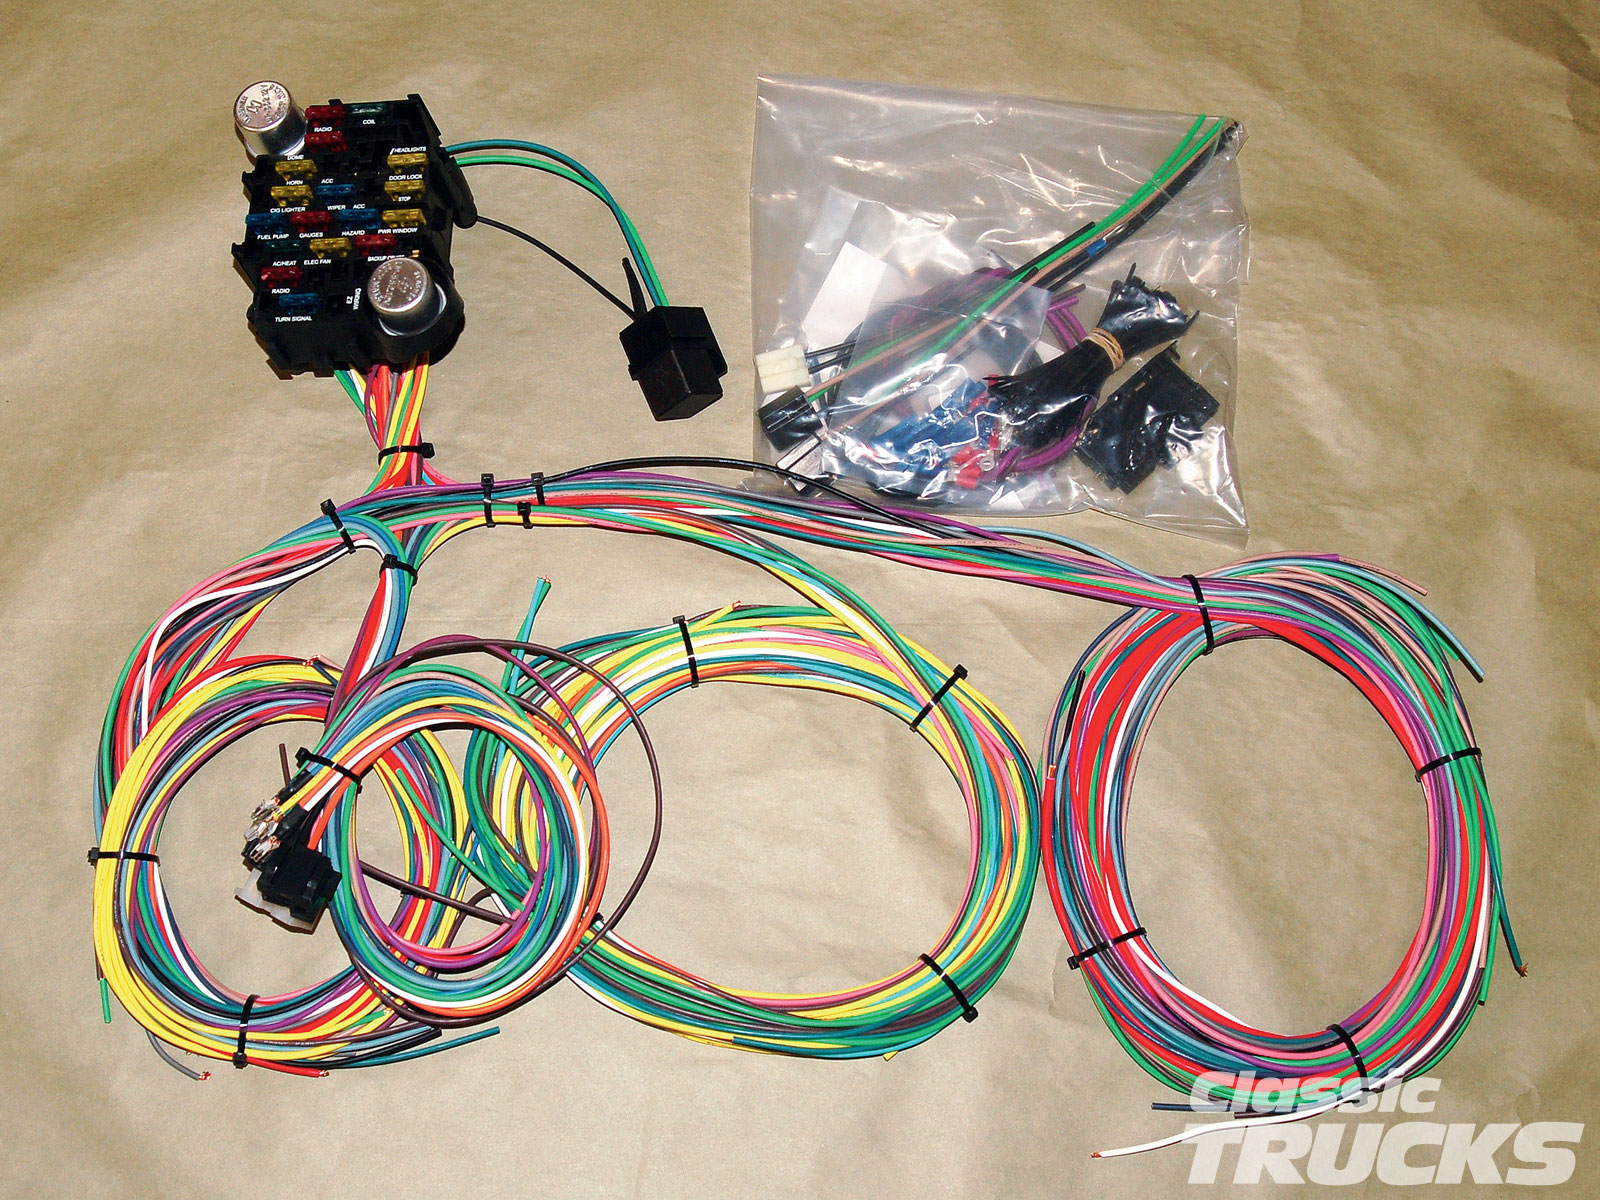 1010clt 02 o aftermarket wiring harness install kit?resize=640%2C480 how much does a wire harness cost to replace hobbiesxstyle how much does it cost to replace a wiring harness at fashall.co